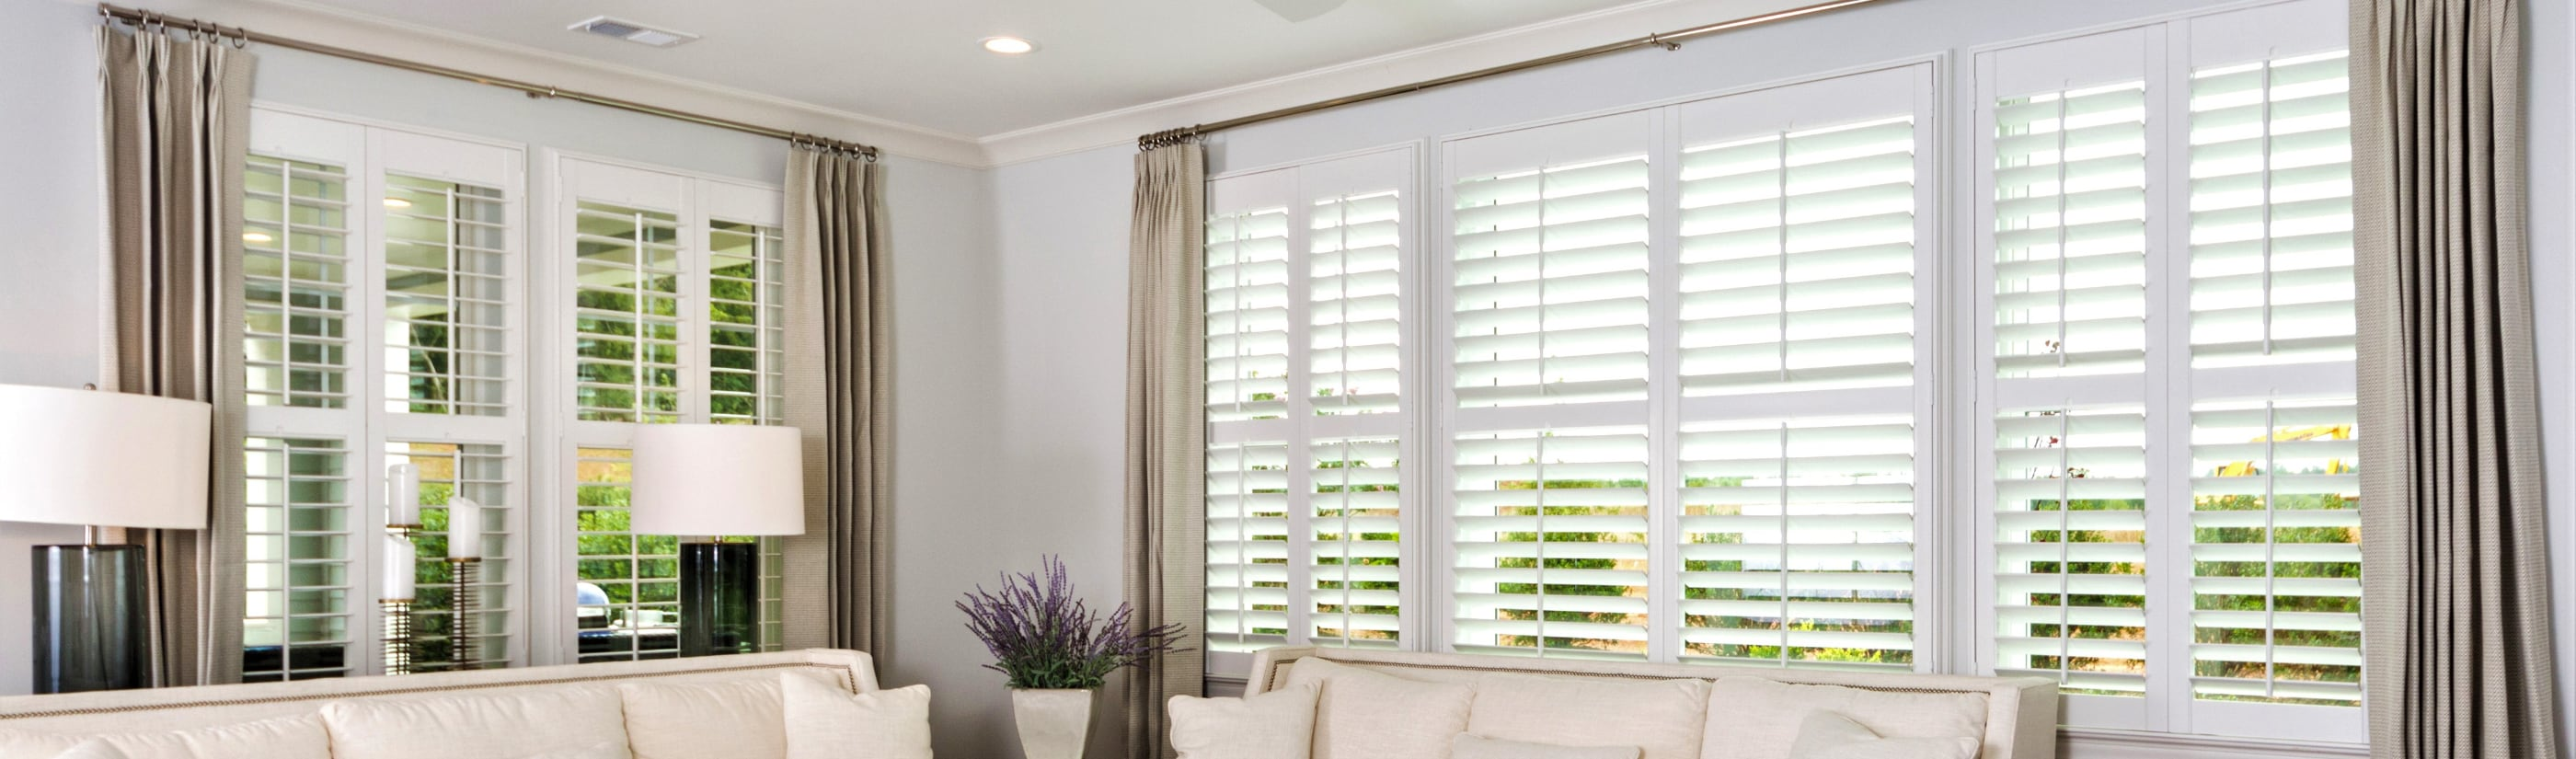 Polywood Shutters Paints In New York City